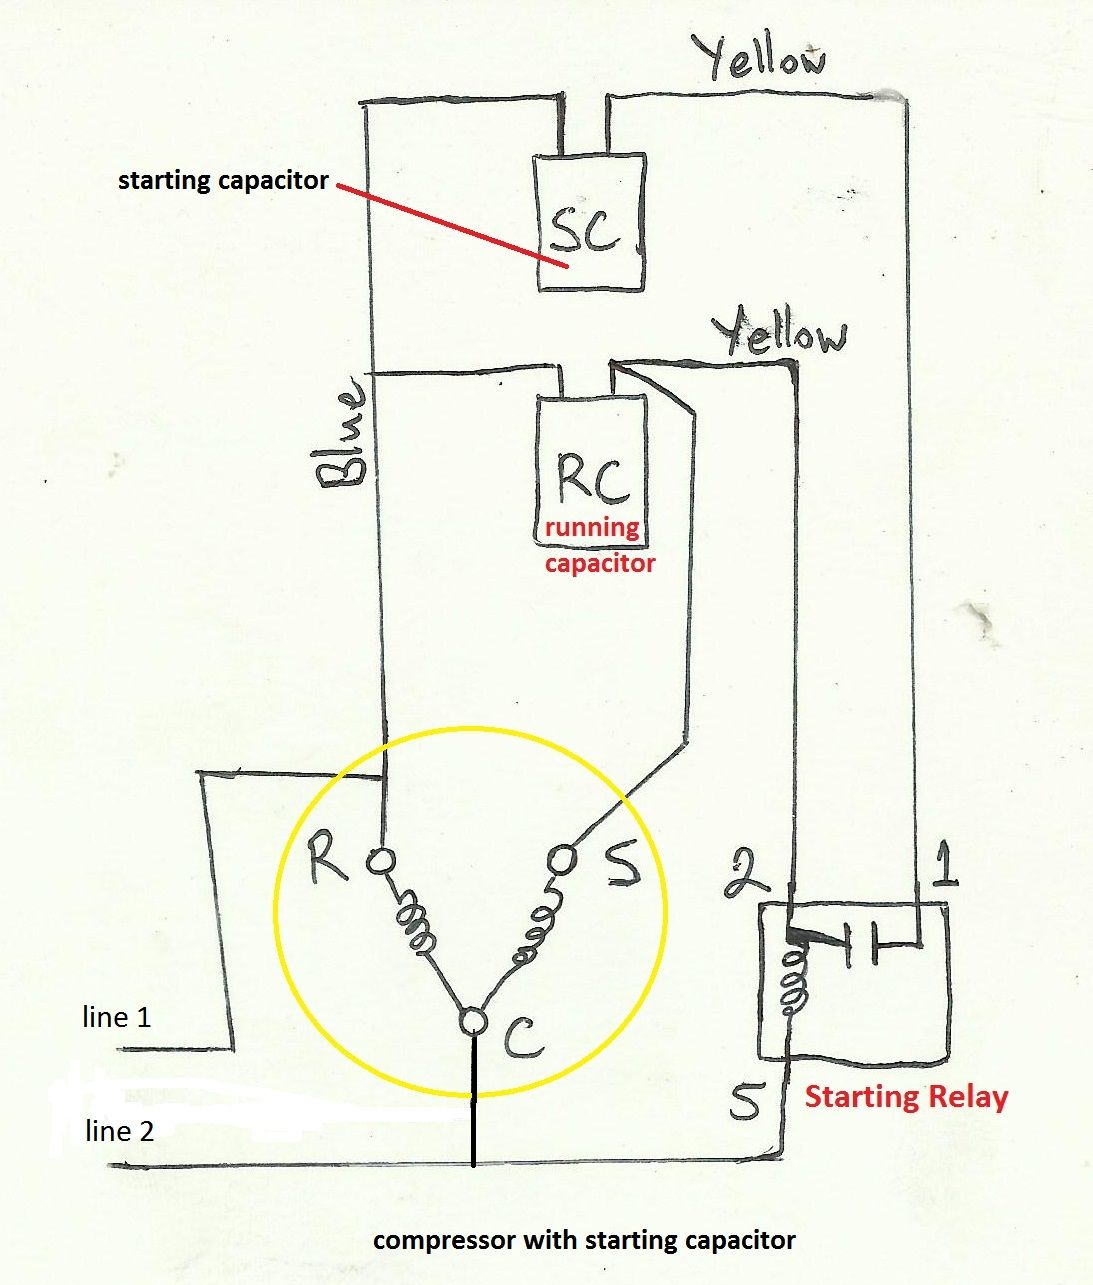 50528d800da7d87408a55b396c2aa5e6 bel air compressor wiring diagram air compressor pump replacement firestone air compressor wiring diagram at pacquiaovsvargaslive.co